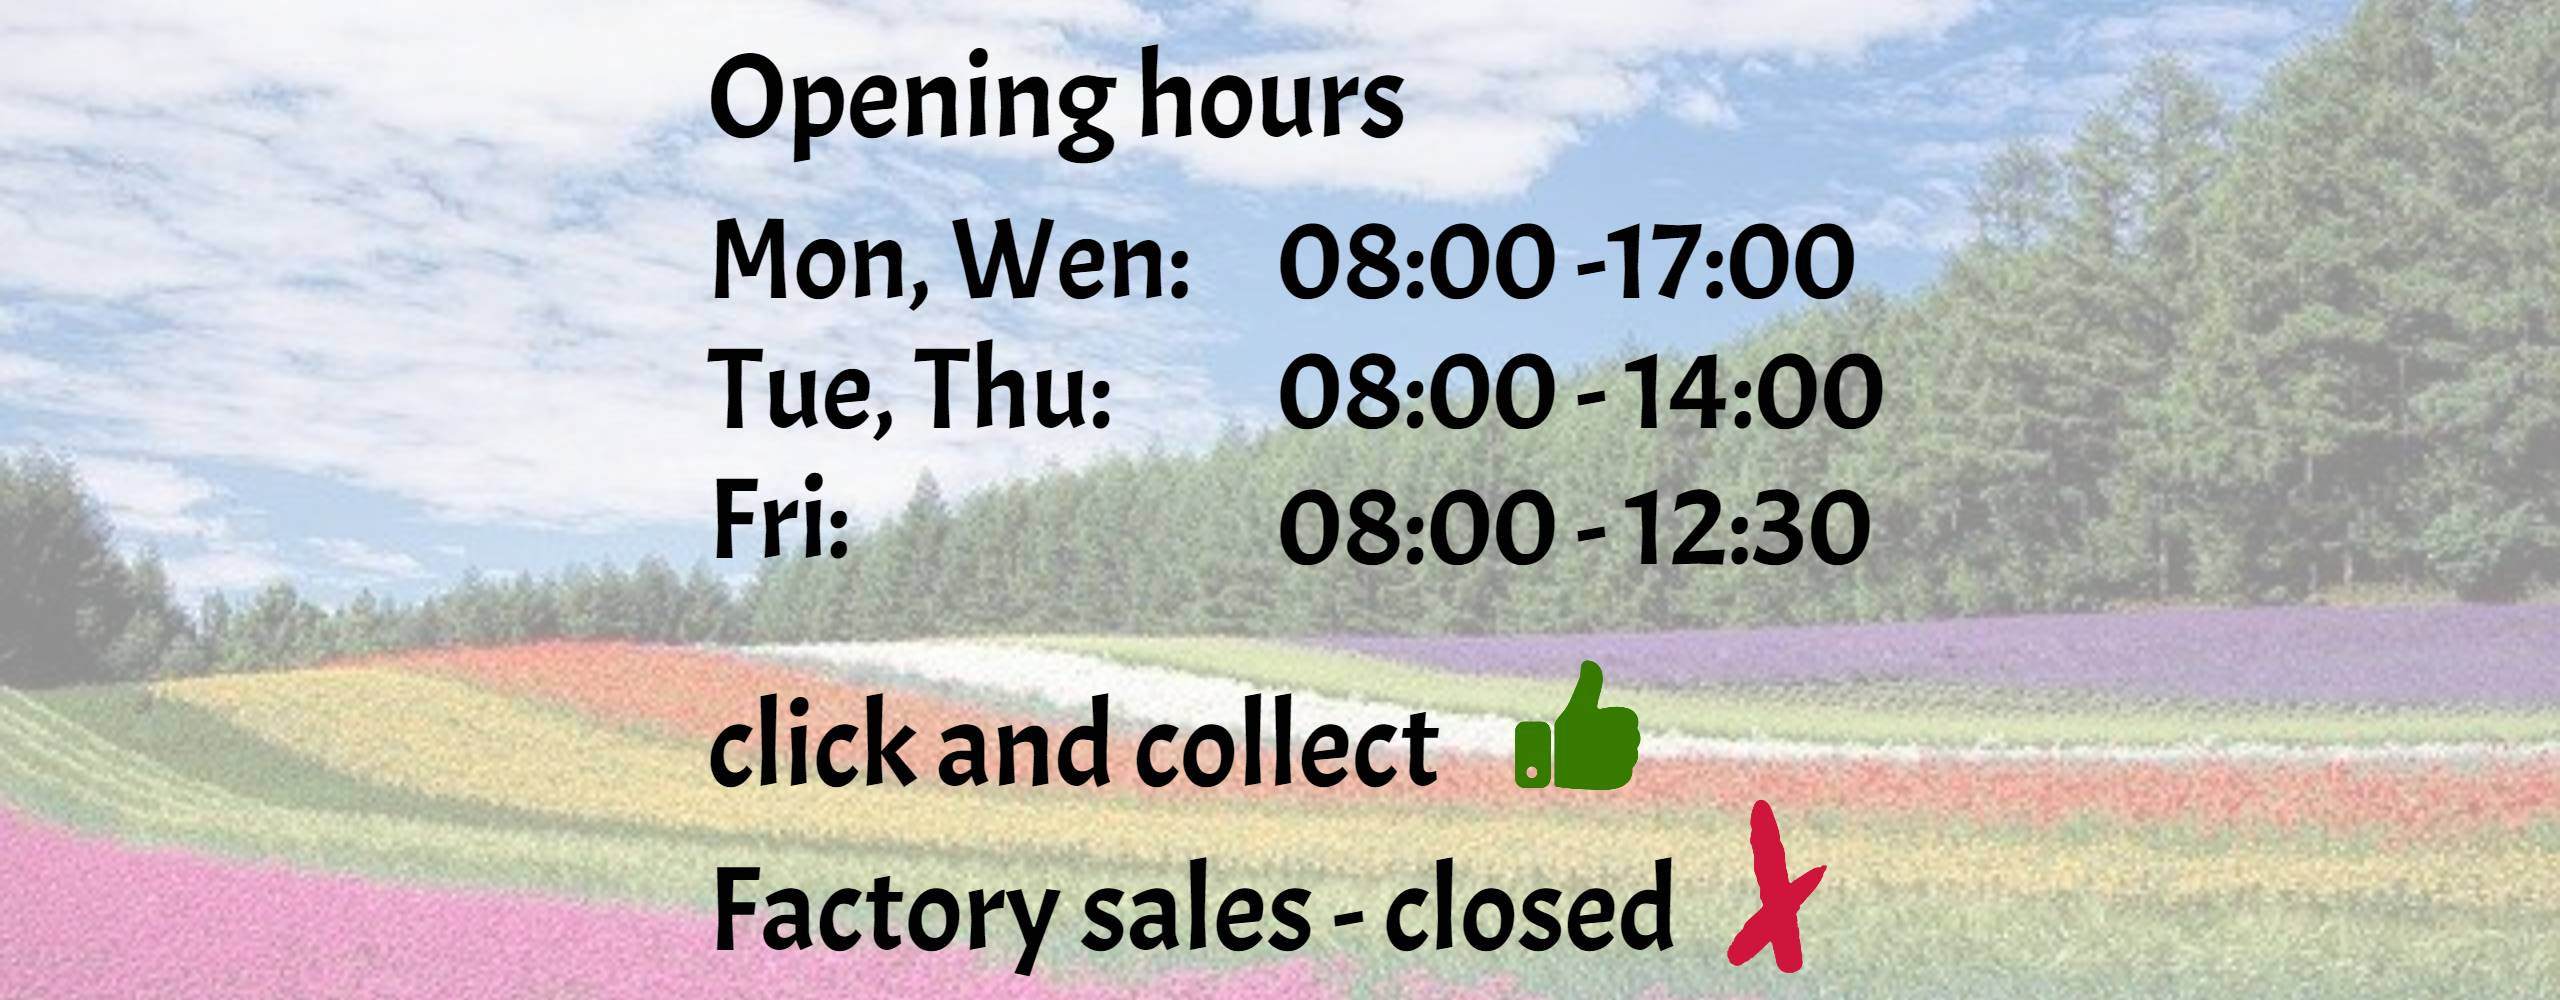 Opening hours and directions